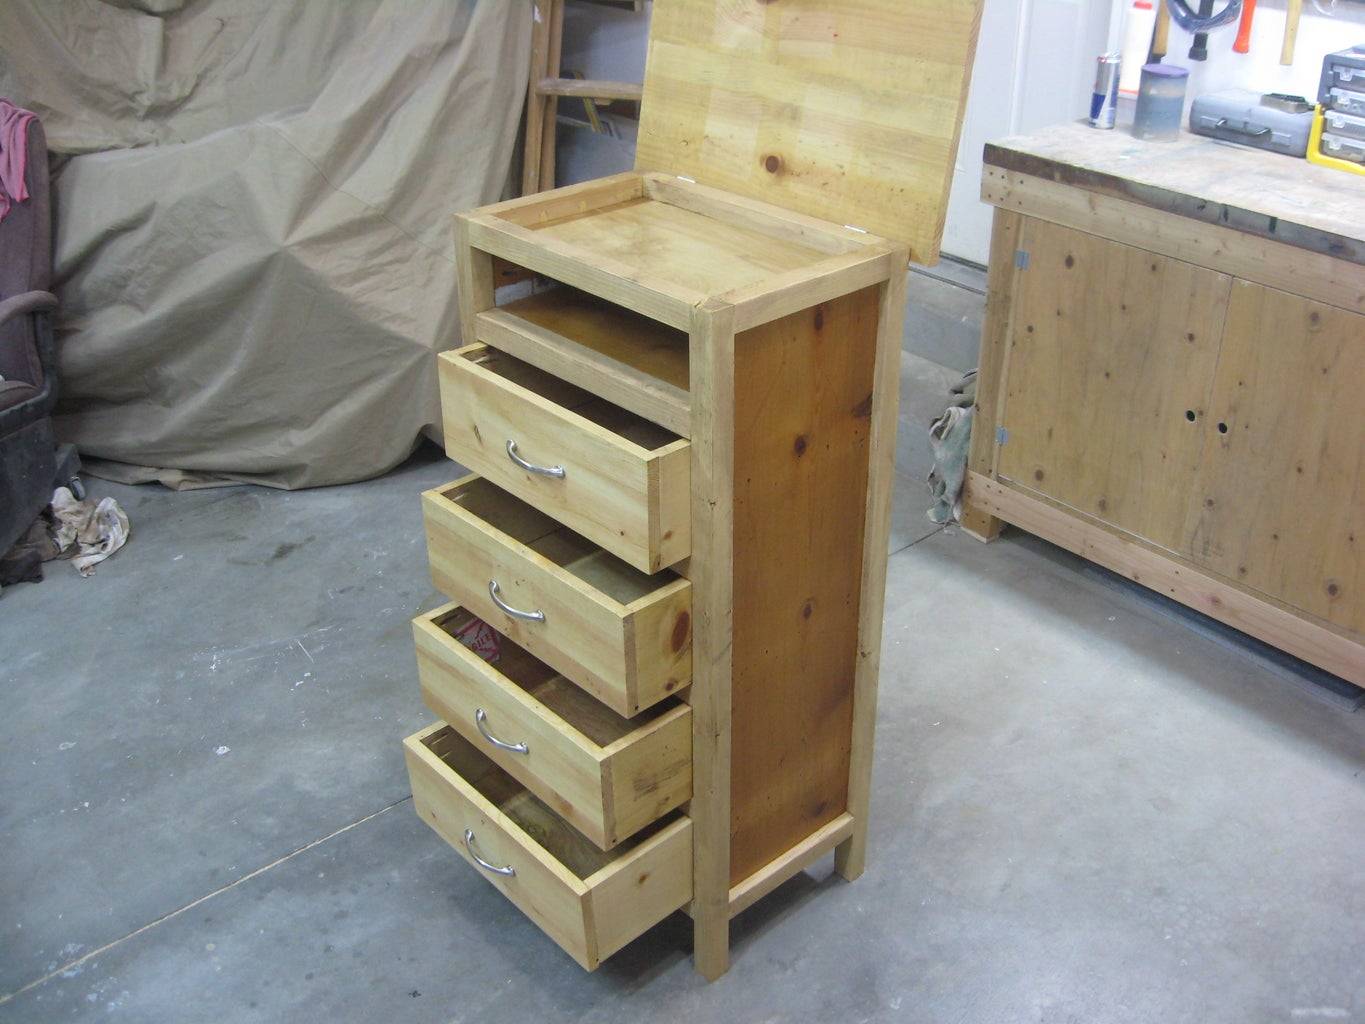 Completed Chest